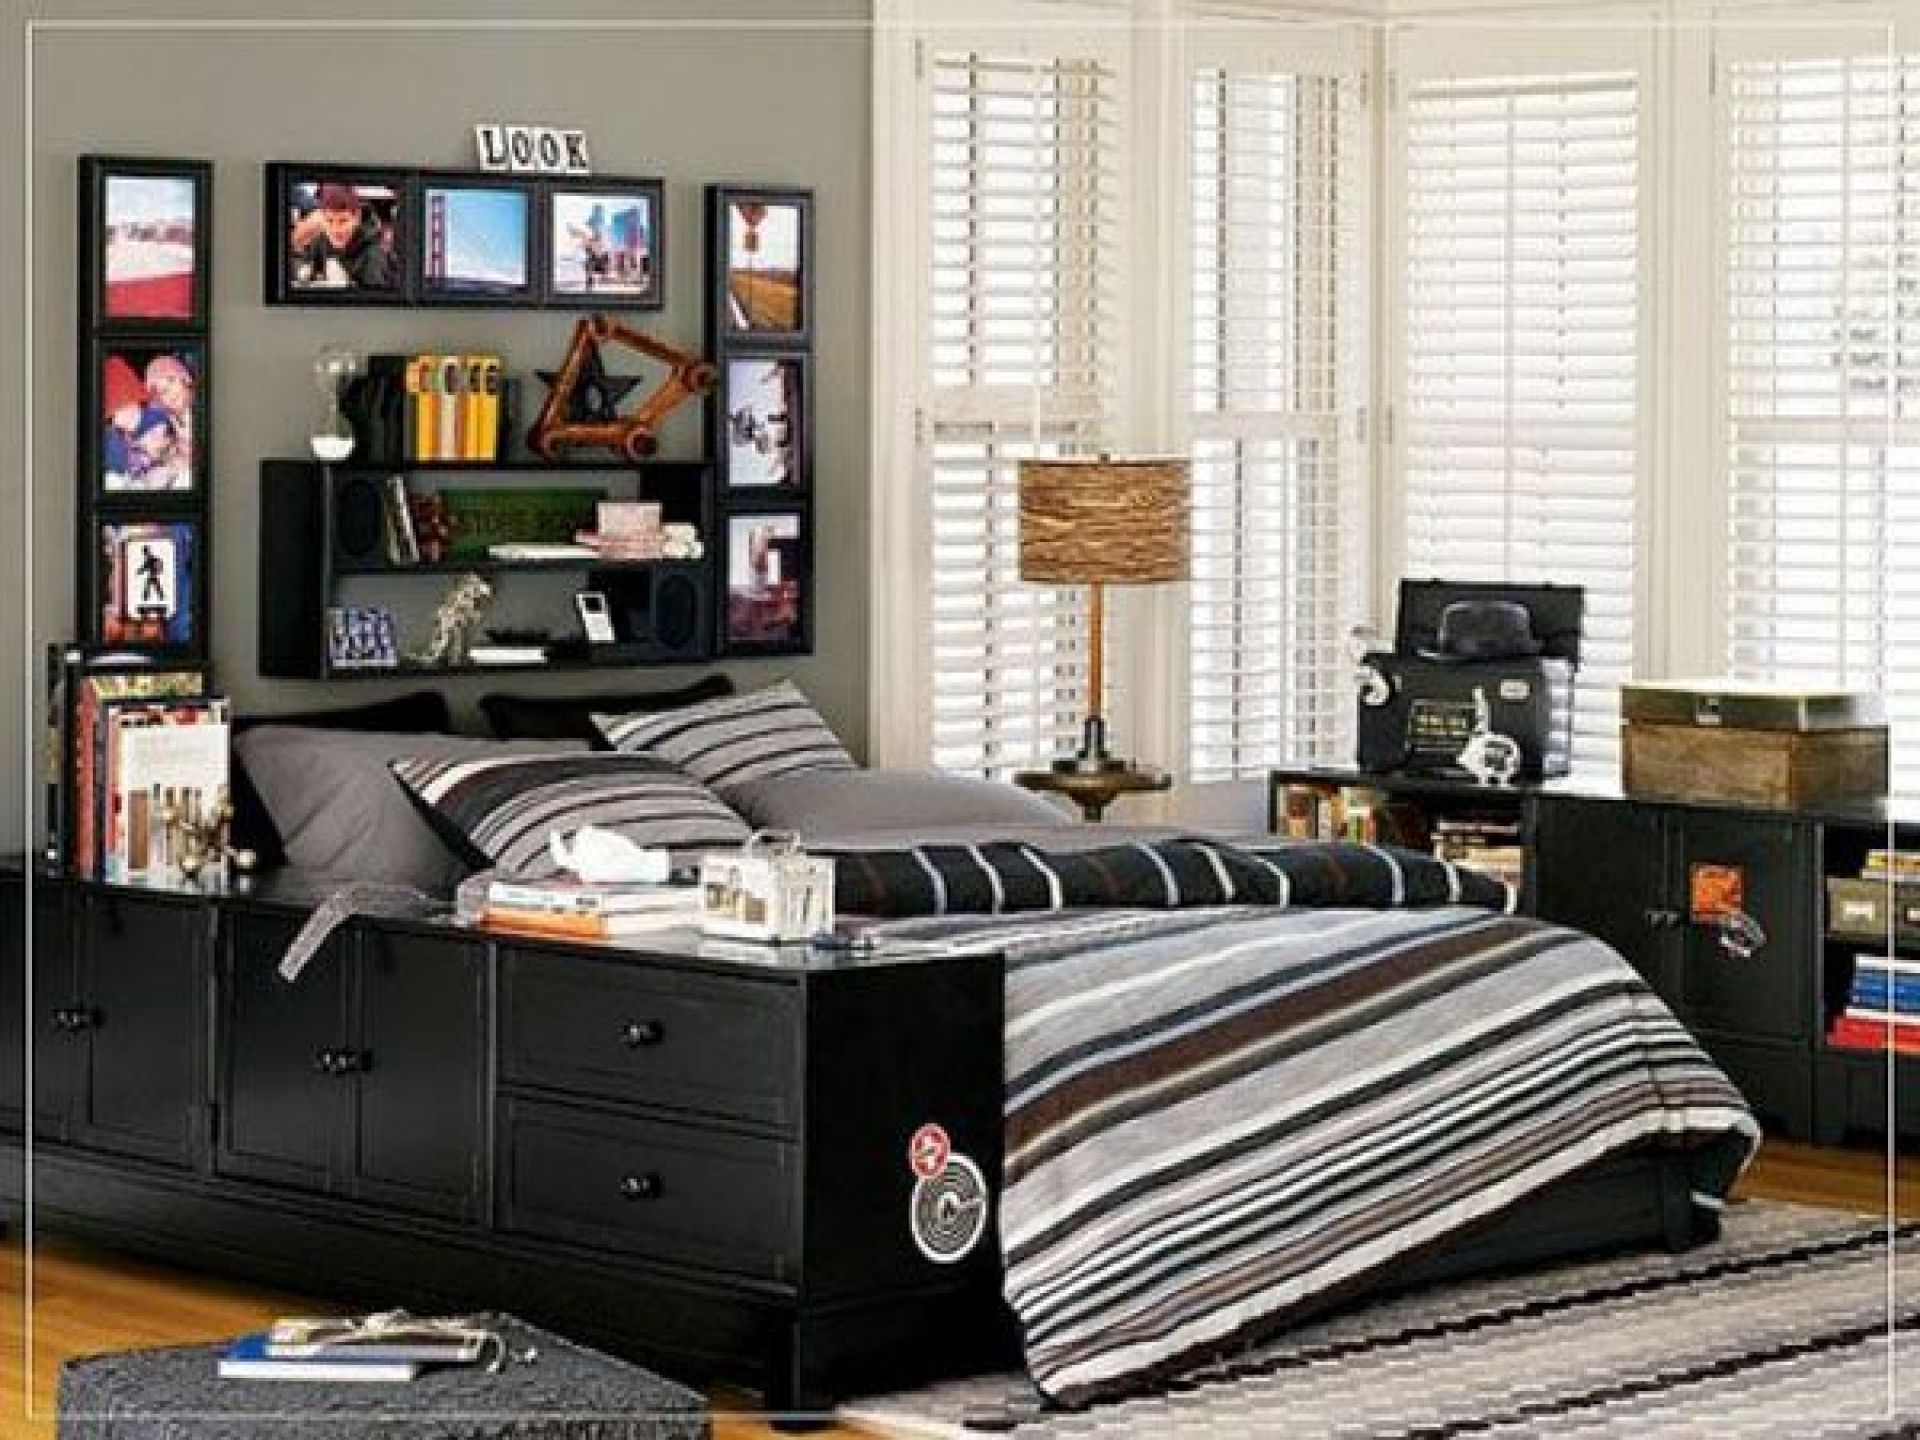 Cool Room Ideas For Teenagers Fair Bedroom Ideas For Teenage Guys With Small Rooms  Google Search . Design Decoration